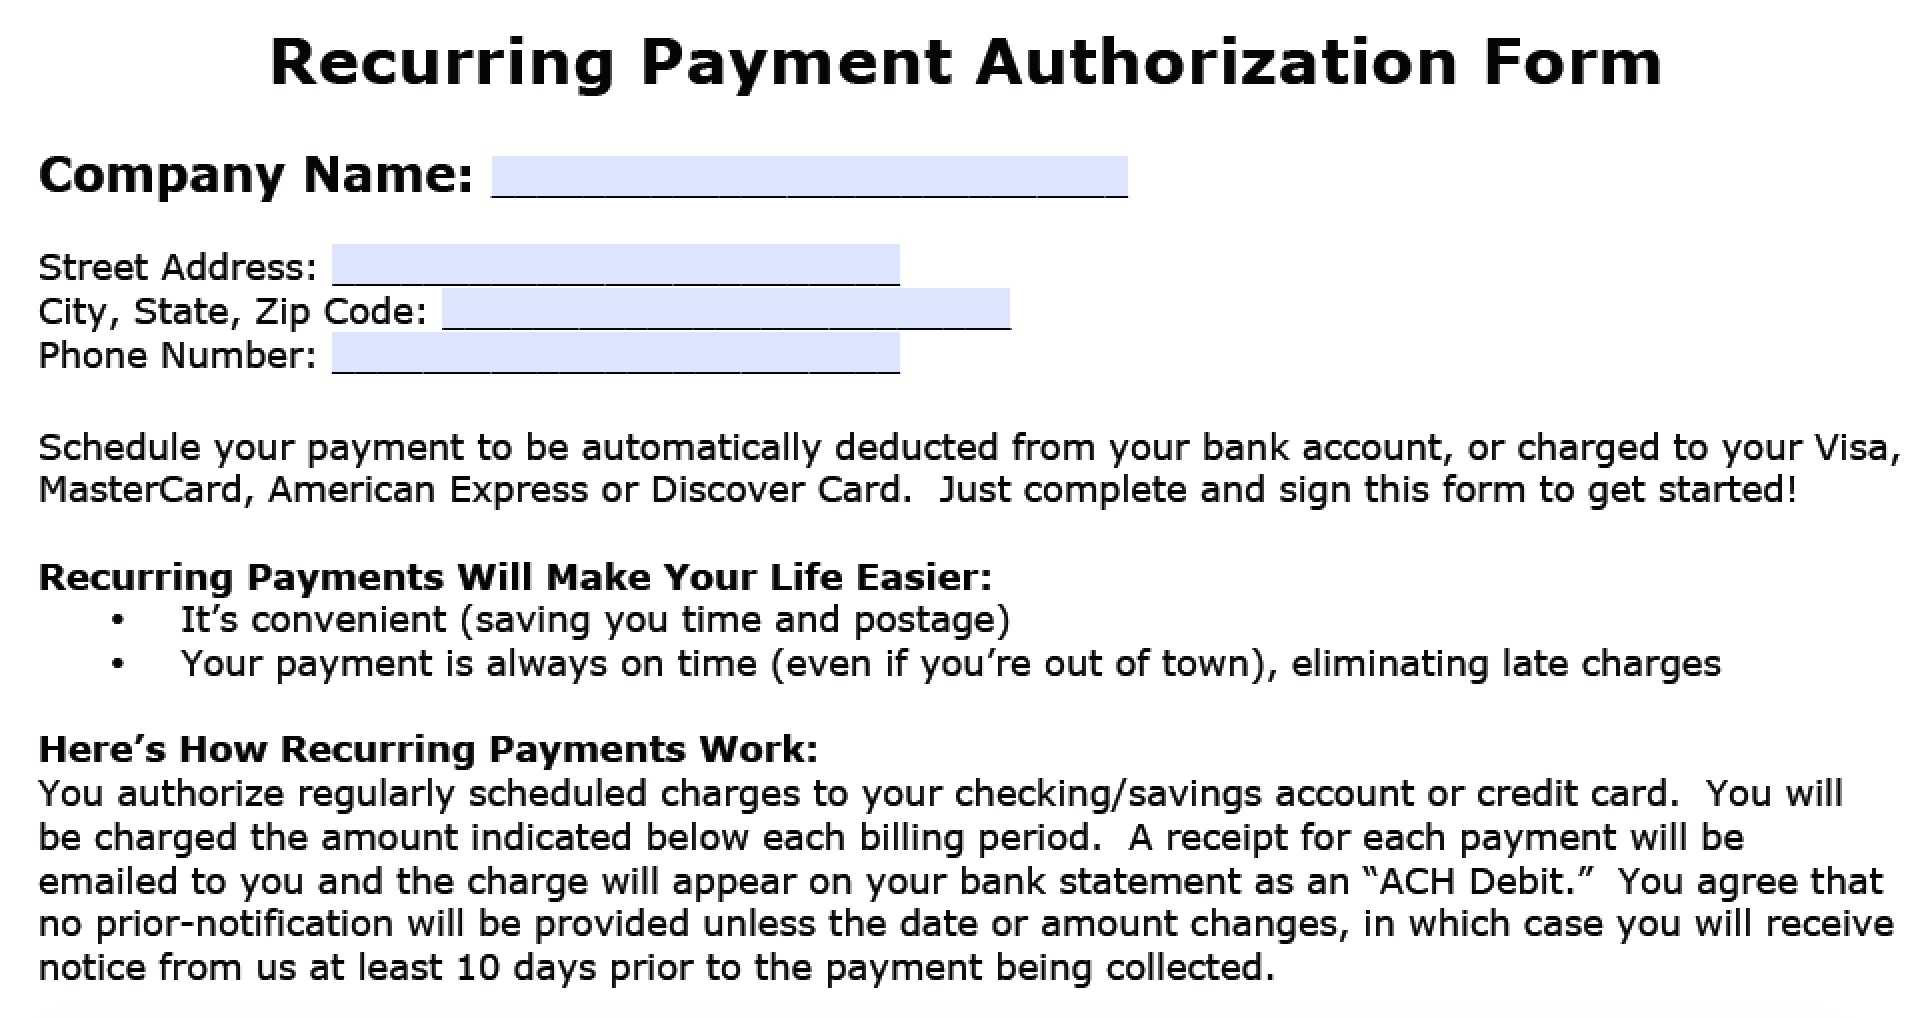 Download Recurring Payment Authorization Form Template | Credit ...